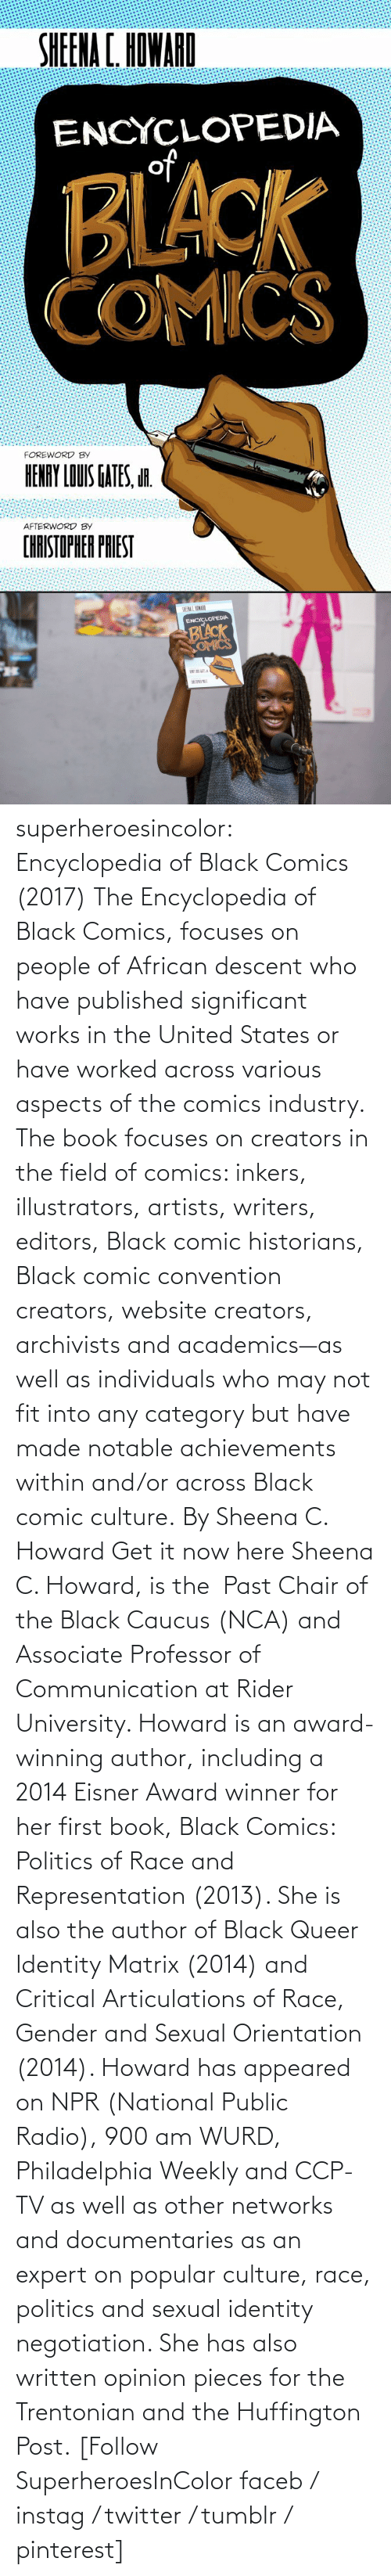 art: superheroesincolor: Encyclopedia of Black Comics (2017) The Encyclopedia of Black Comics, focuses on people of African descent who have published significant works in the United States or have worked across various aspects of the comics industry.  The book focuses on creators in the field of comics: inkers, illustrators, artists, writers, editors, Black comic historians, Black comic convention creators, website creators, archivists and academics—as well as individuals who may not fit into any category but have made notable achievements within and/or across Black comic culture. By Sheena C. Howard Get it now here  Sheena C. Howard, is the  Past Chair of the Black Caucus (NCA) and Associate Professor of Communication at Rider University. Howard is an award-winning author, including a 2014 Eisner Award winner for her first book, Black Comics: Politics of Race and Representation (2013). She is also the author of Black Queer Identity Matrix (2014) and Critical Articulations of Race, Gender and Sexual Orientation (2014). Howard has appeared on NPR (National Public Radio), 900 am WURD, Philadelphia Weekly and CCP-TV as well as other networks and documentaries as an expert on popular culture, race, politics and sexual identity negotiation. She has also written opinion pieces for the Trentonian and the Huffington Post.   [Follow SuperheroesInColor faceb / instag / twitter / tumblr / pinterest]